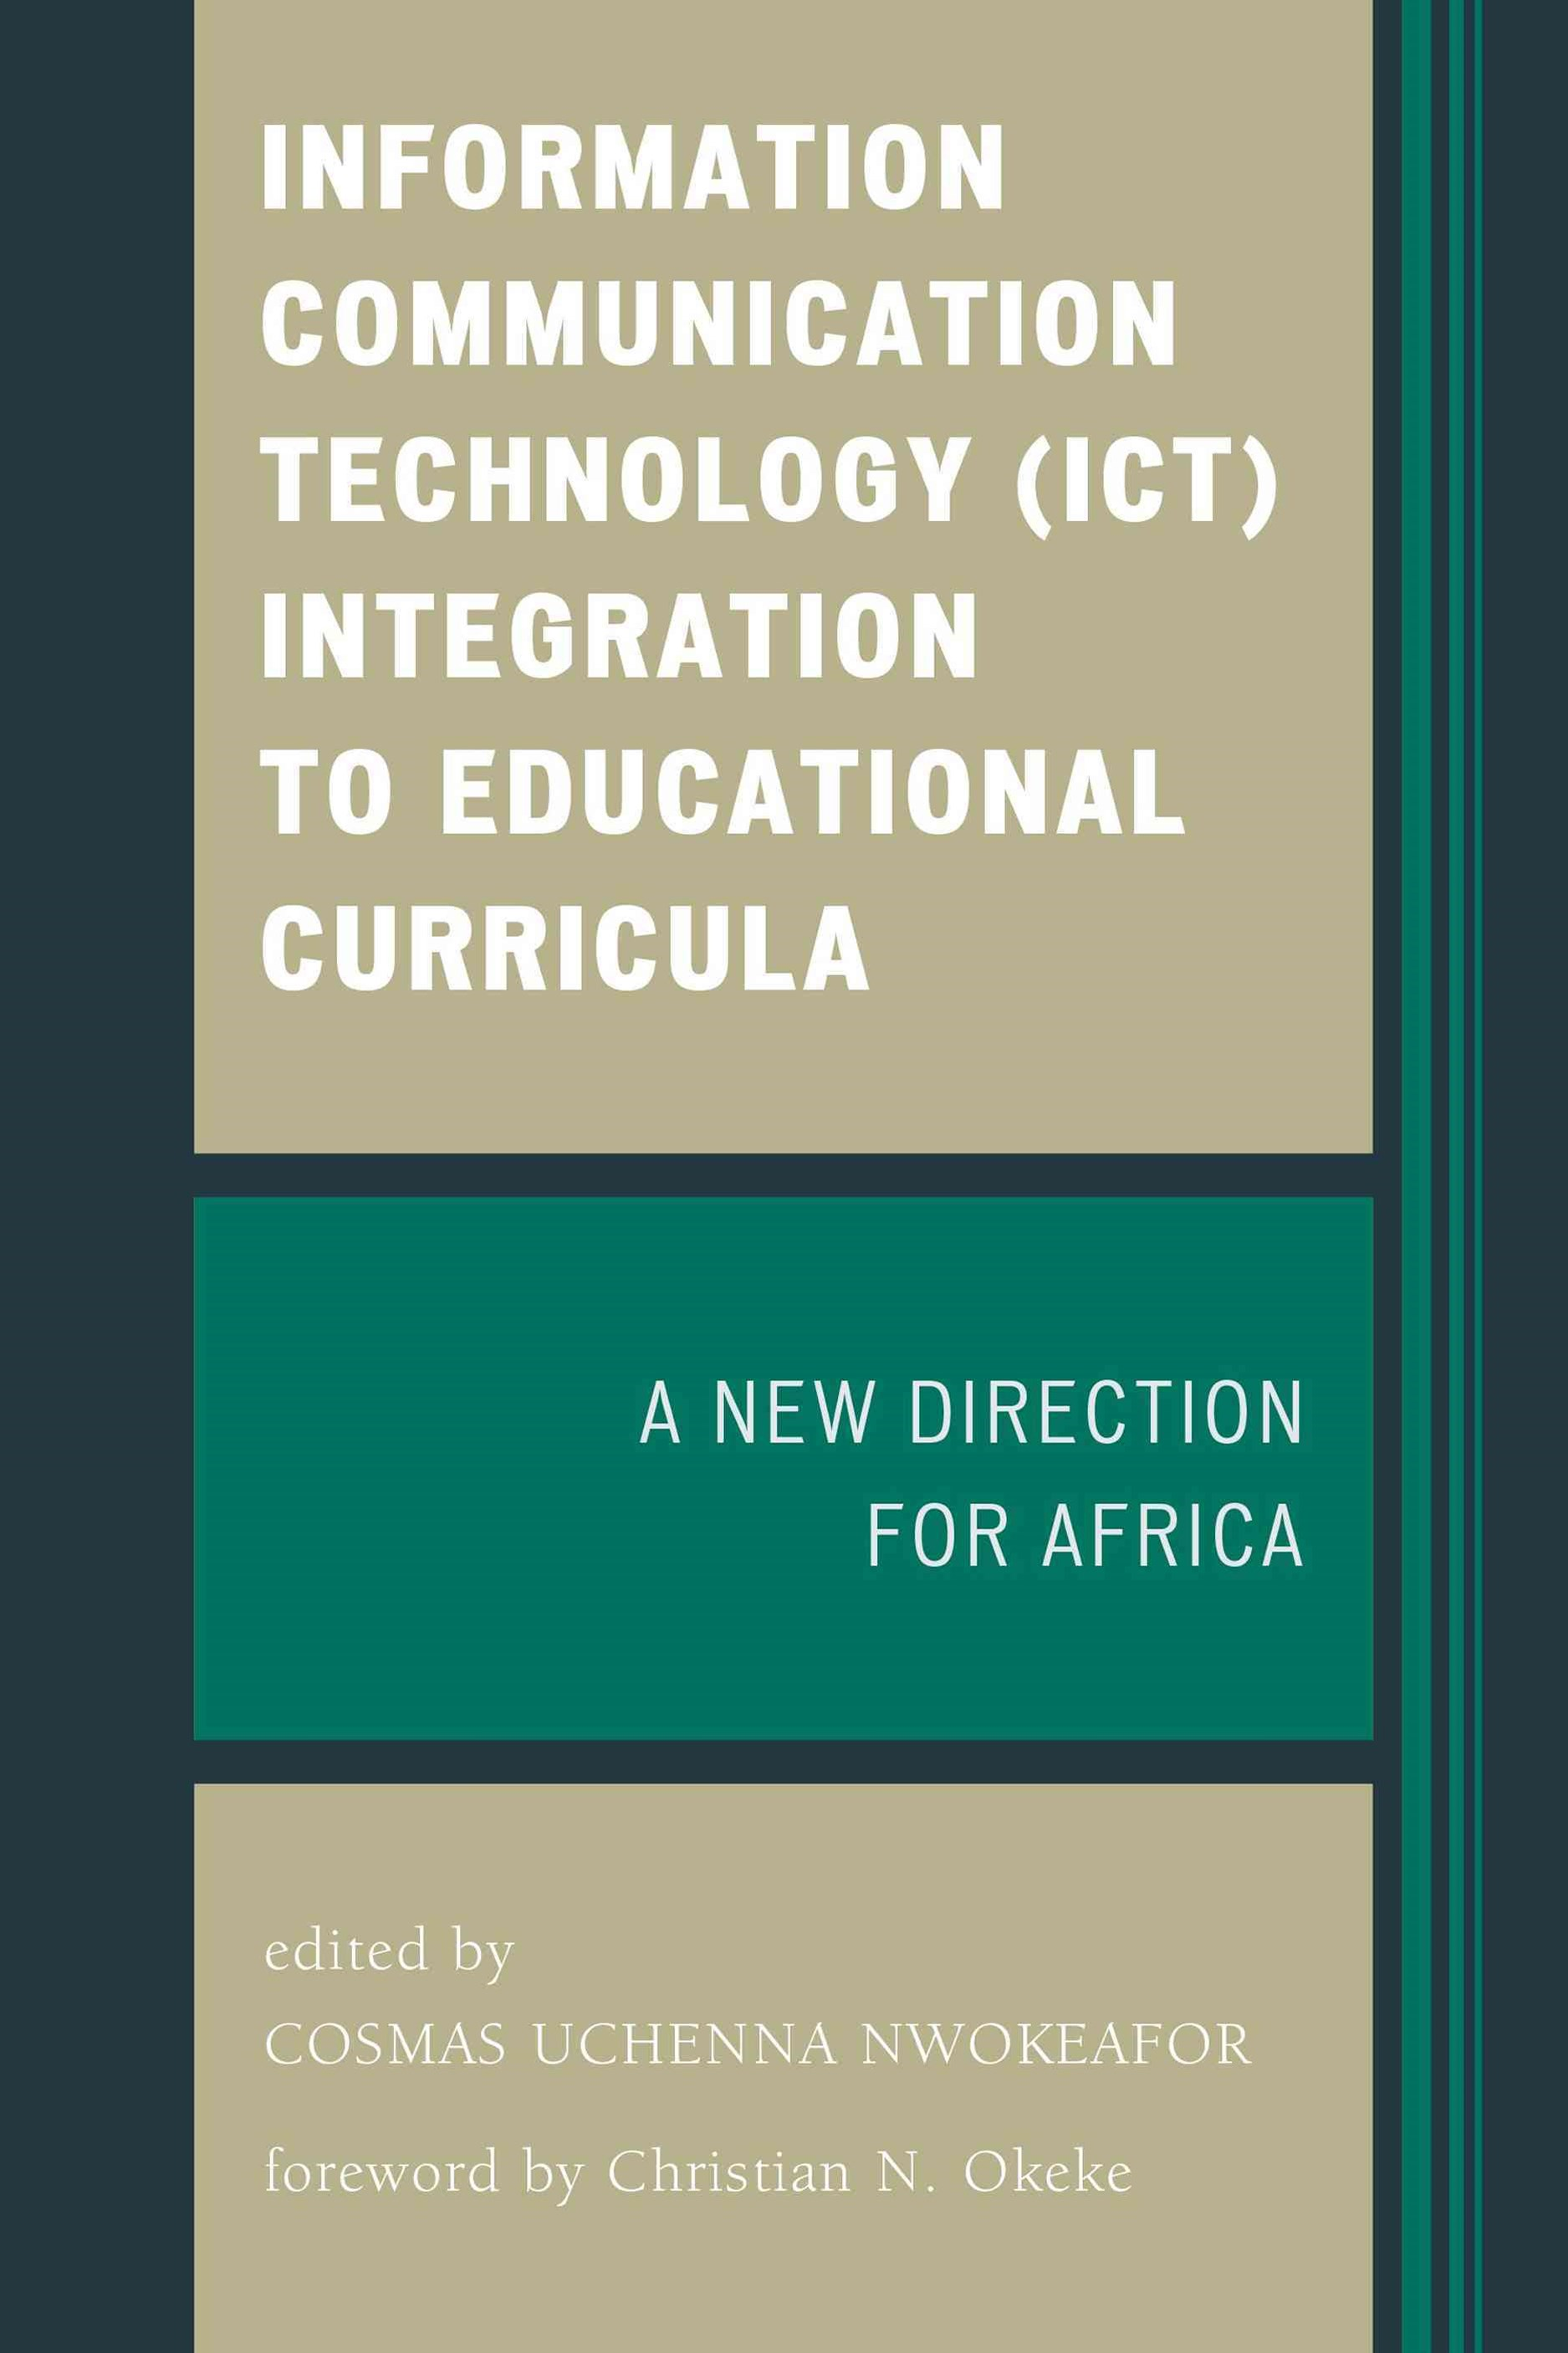 Information Communication Technology (ICT) Integration to Educational Curricula